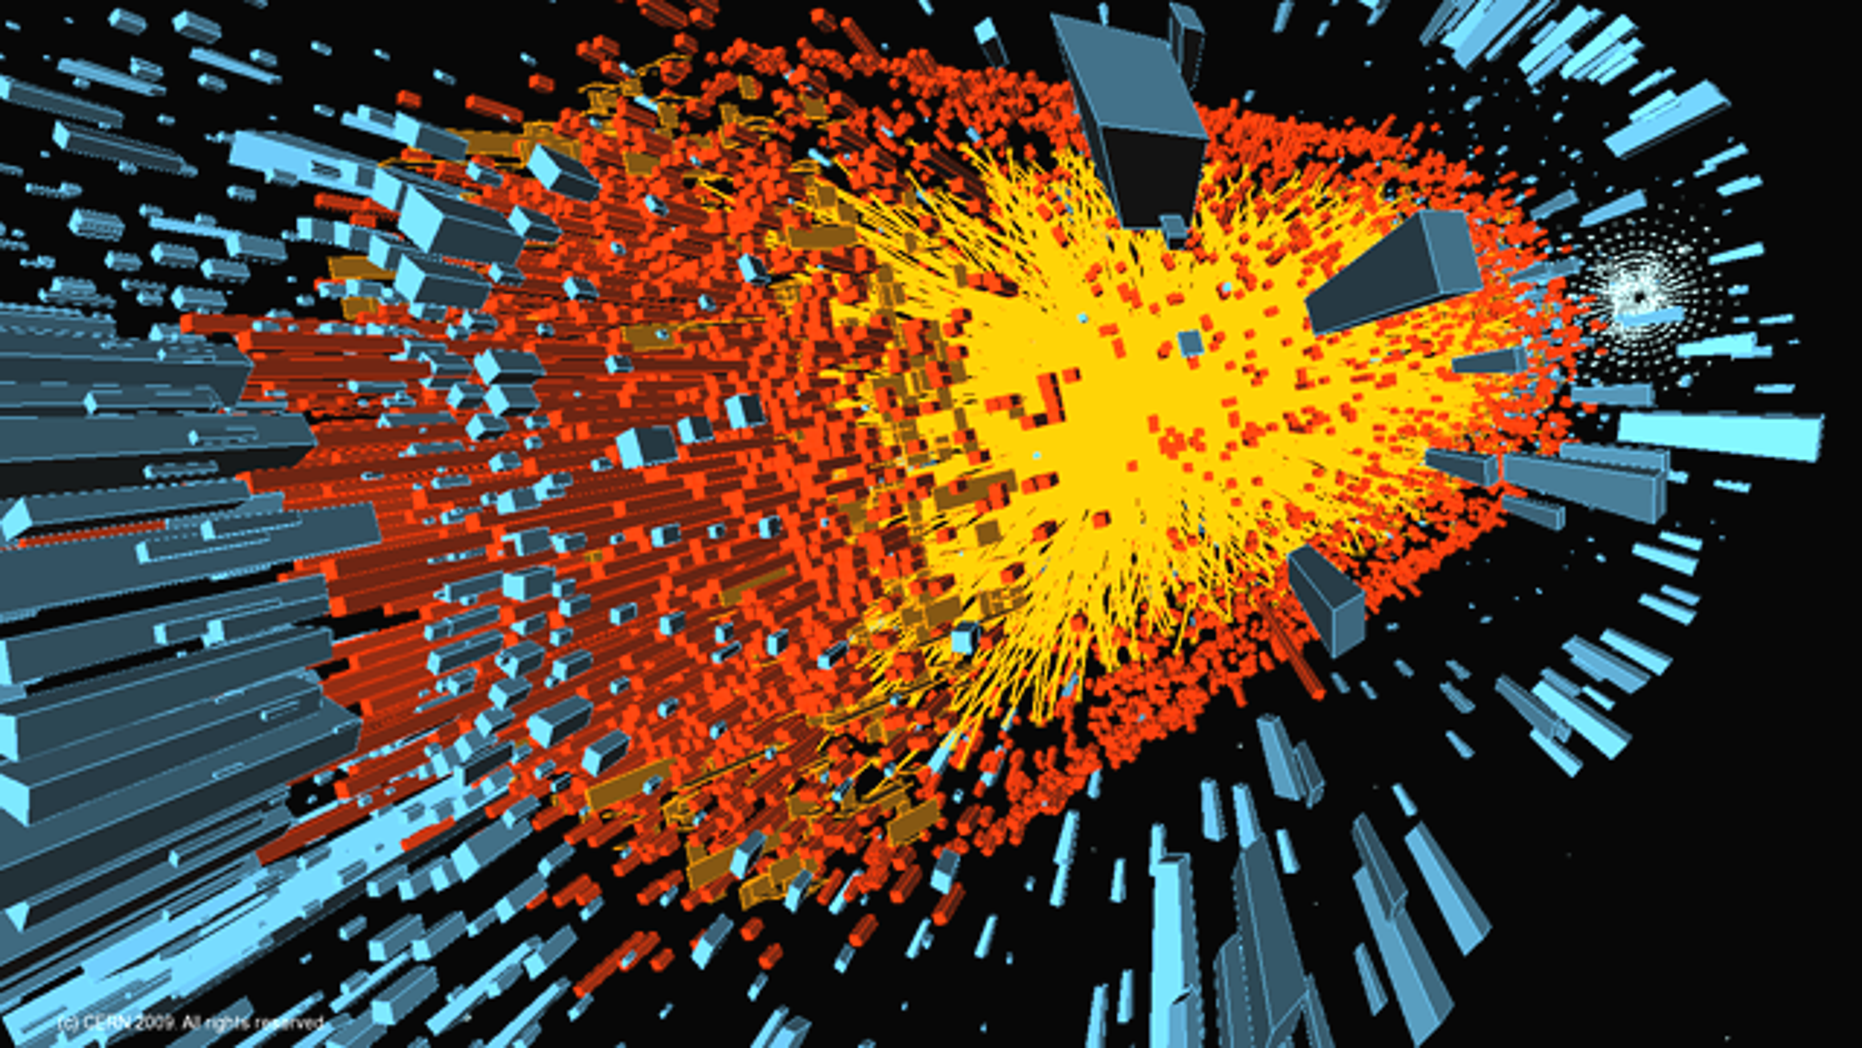 A computer simulation of the first lead ion collision in the Large Hadron Collider, a simulation of the events immediately after the Big Bang.